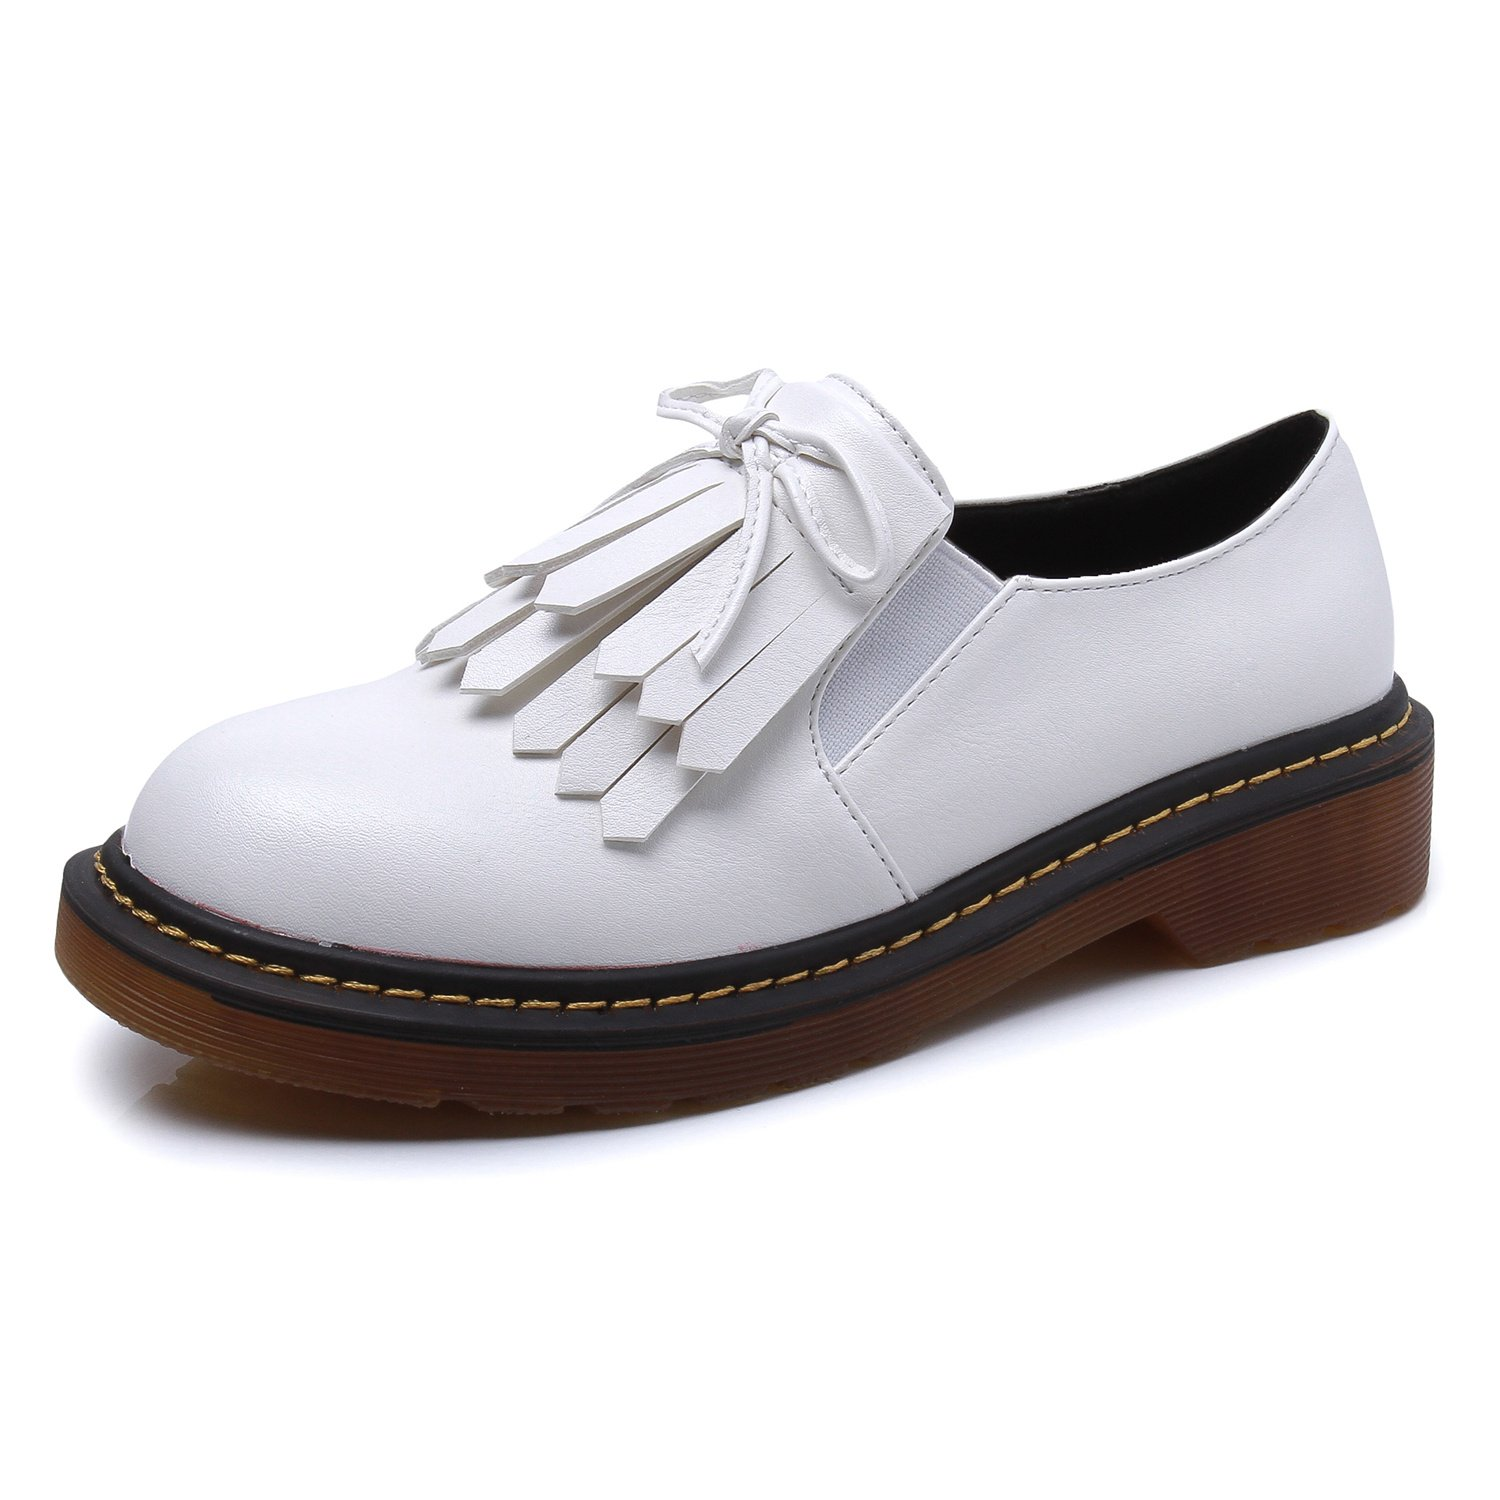 Smilun Lady¡¯s Brogues Classic Lace-up Flats Shoes for Autumn Winter Spring Slip On White Size 10 B(M) US